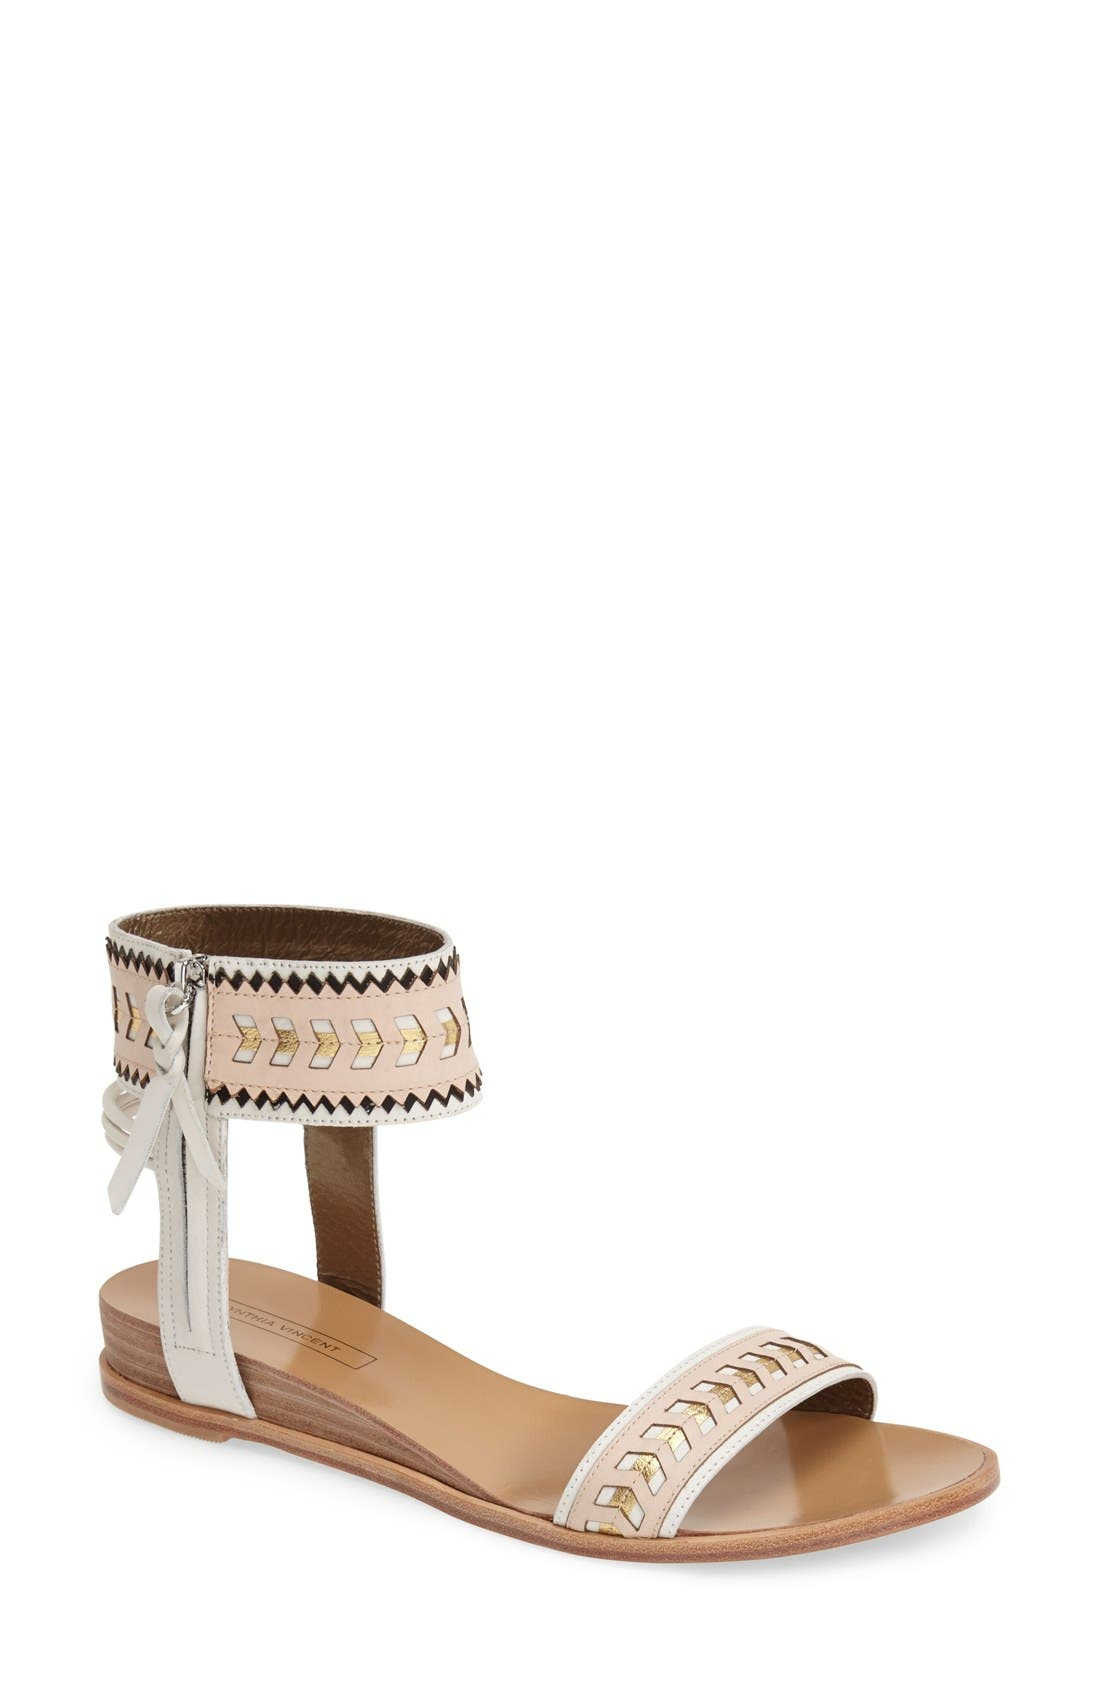 Main Image - Cynthia Vincent 'Fayette' Leather Ankle Strap Sandal (Women)